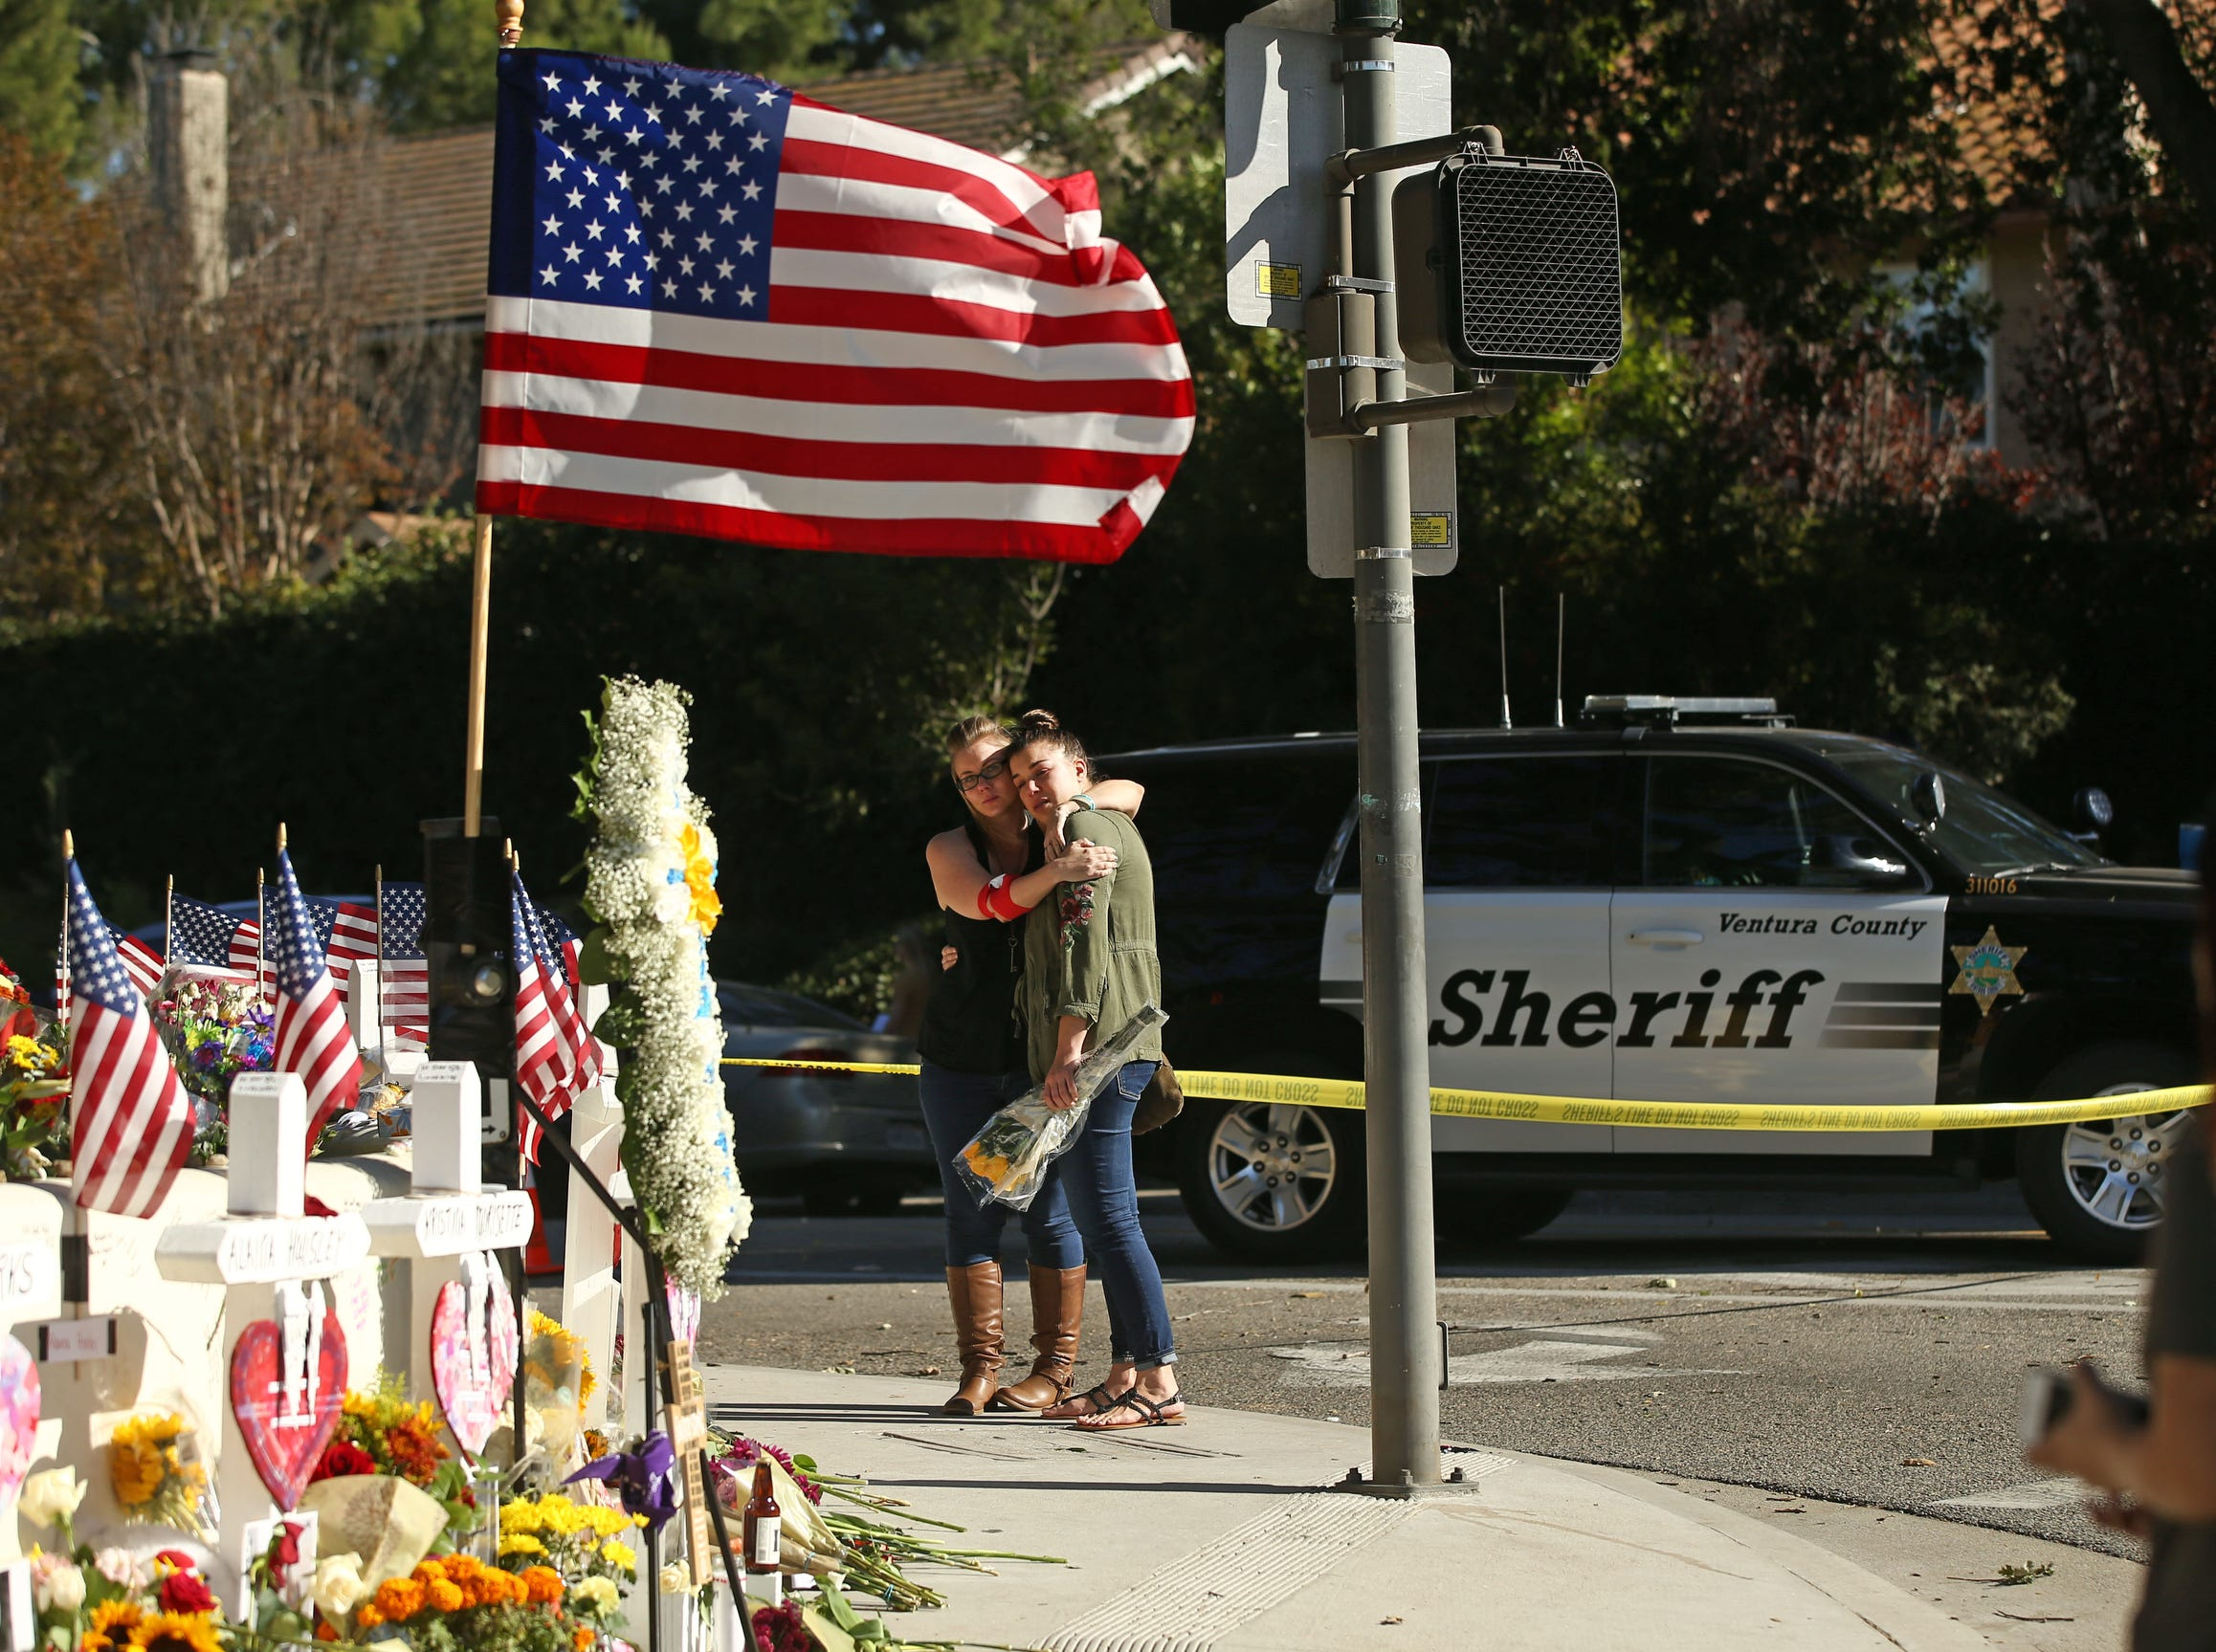 Peole mourn as the mass shooting victims' memorial grows Sunday, Nov. 11, 2018, in Thousand Oaks, Calif., as the FBI and Ventura County Sheriff's office continue their investigation at the Borderline Bar and Grill.